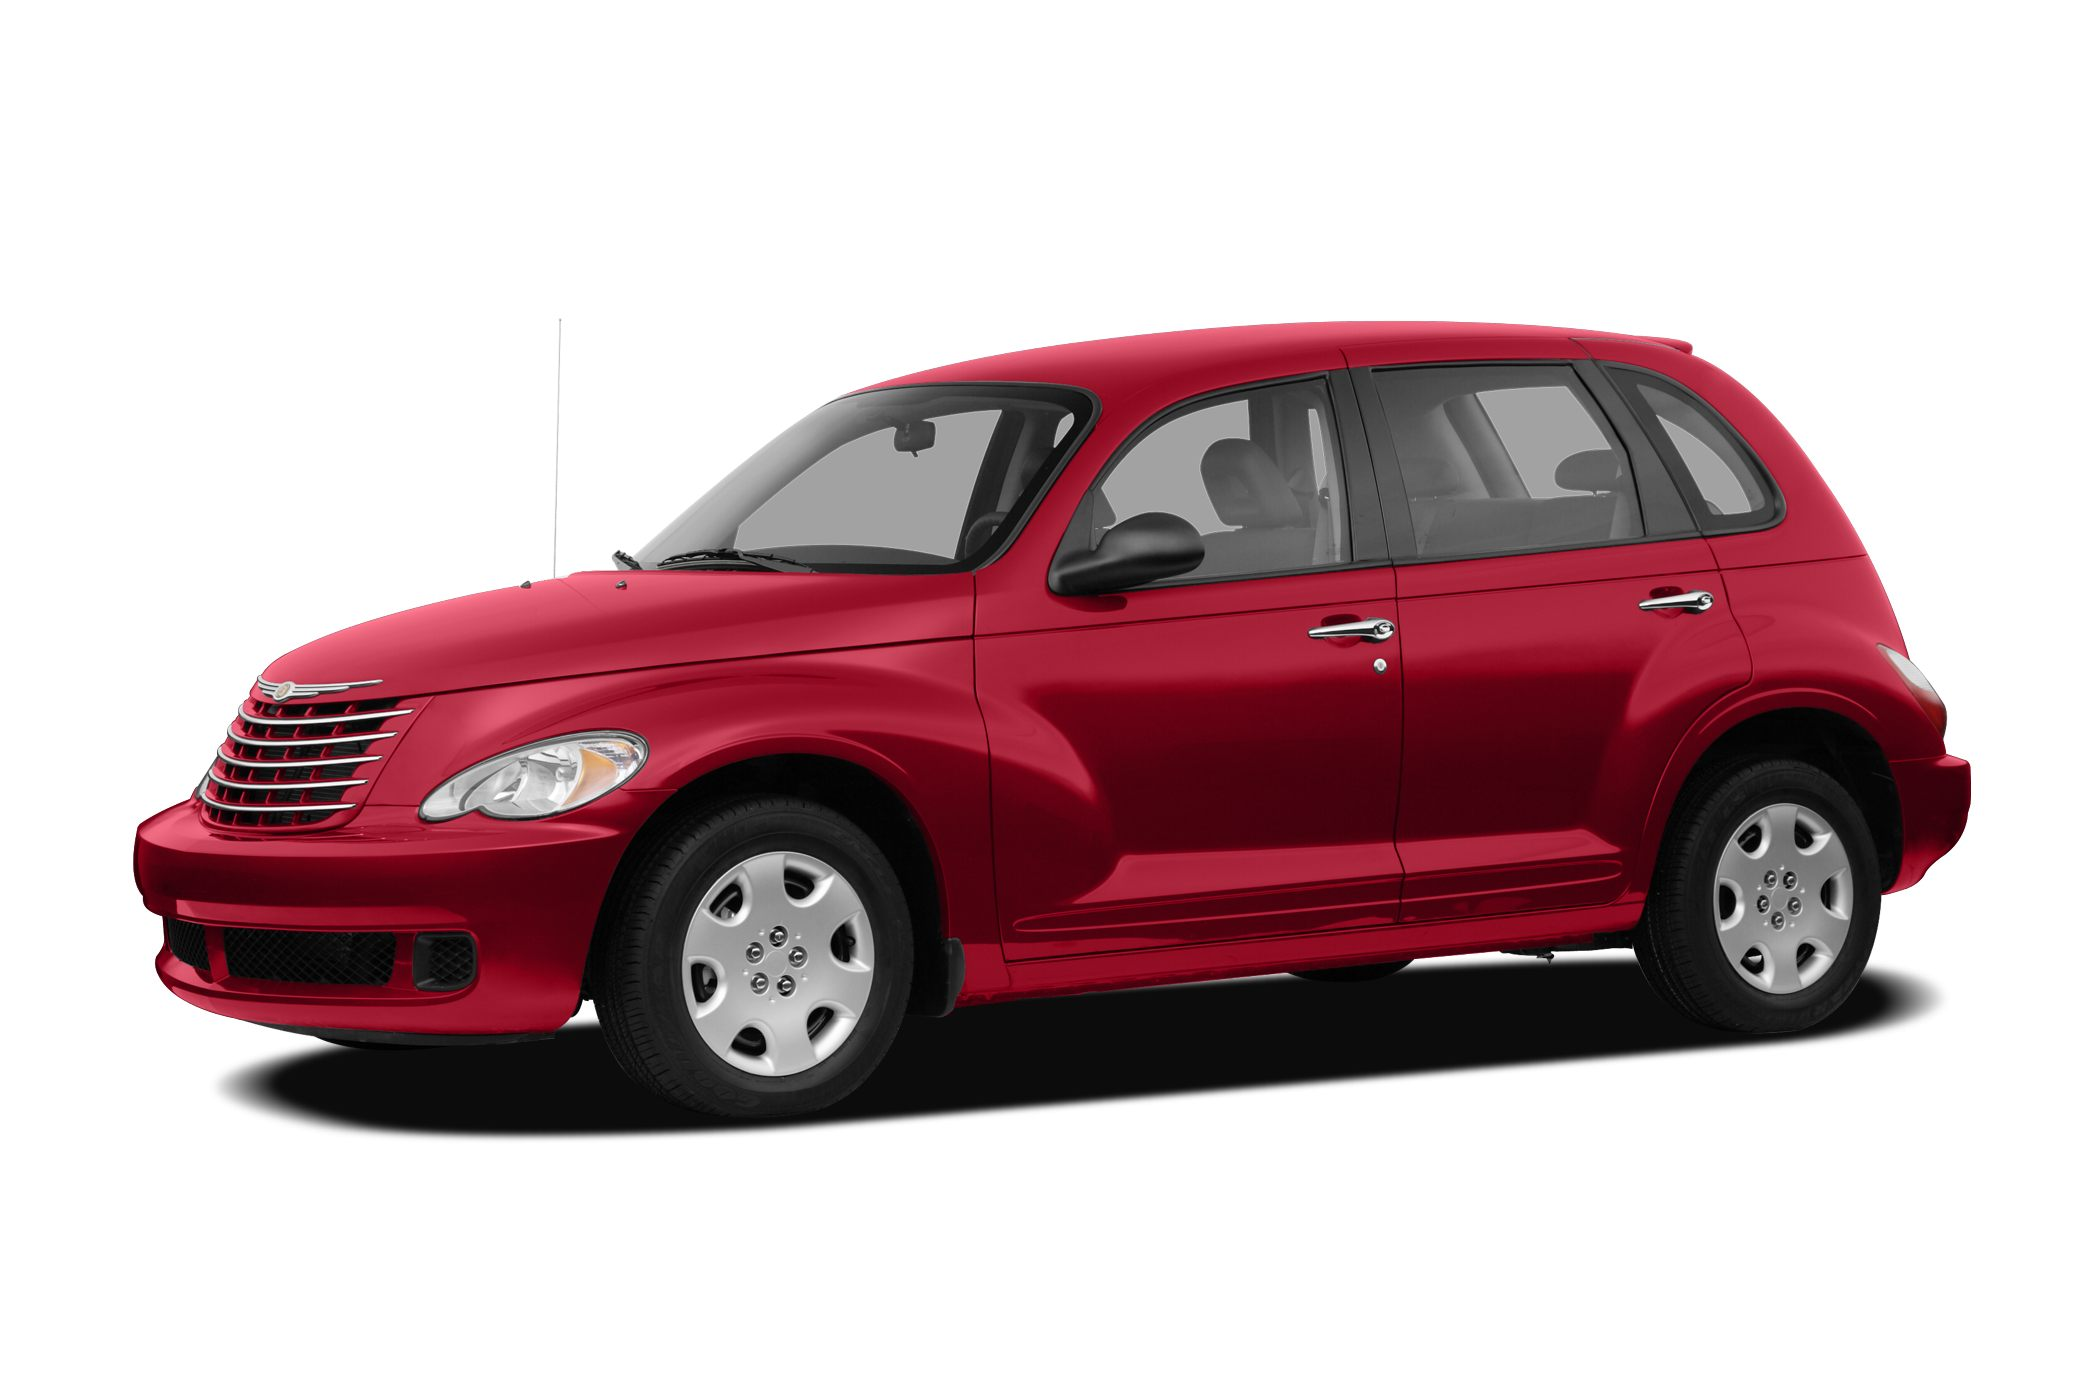 2006 Chrysler PT Cruiser Limited Miles 108238Color Red Stock K16983A VIN 3A8FY68886T200855